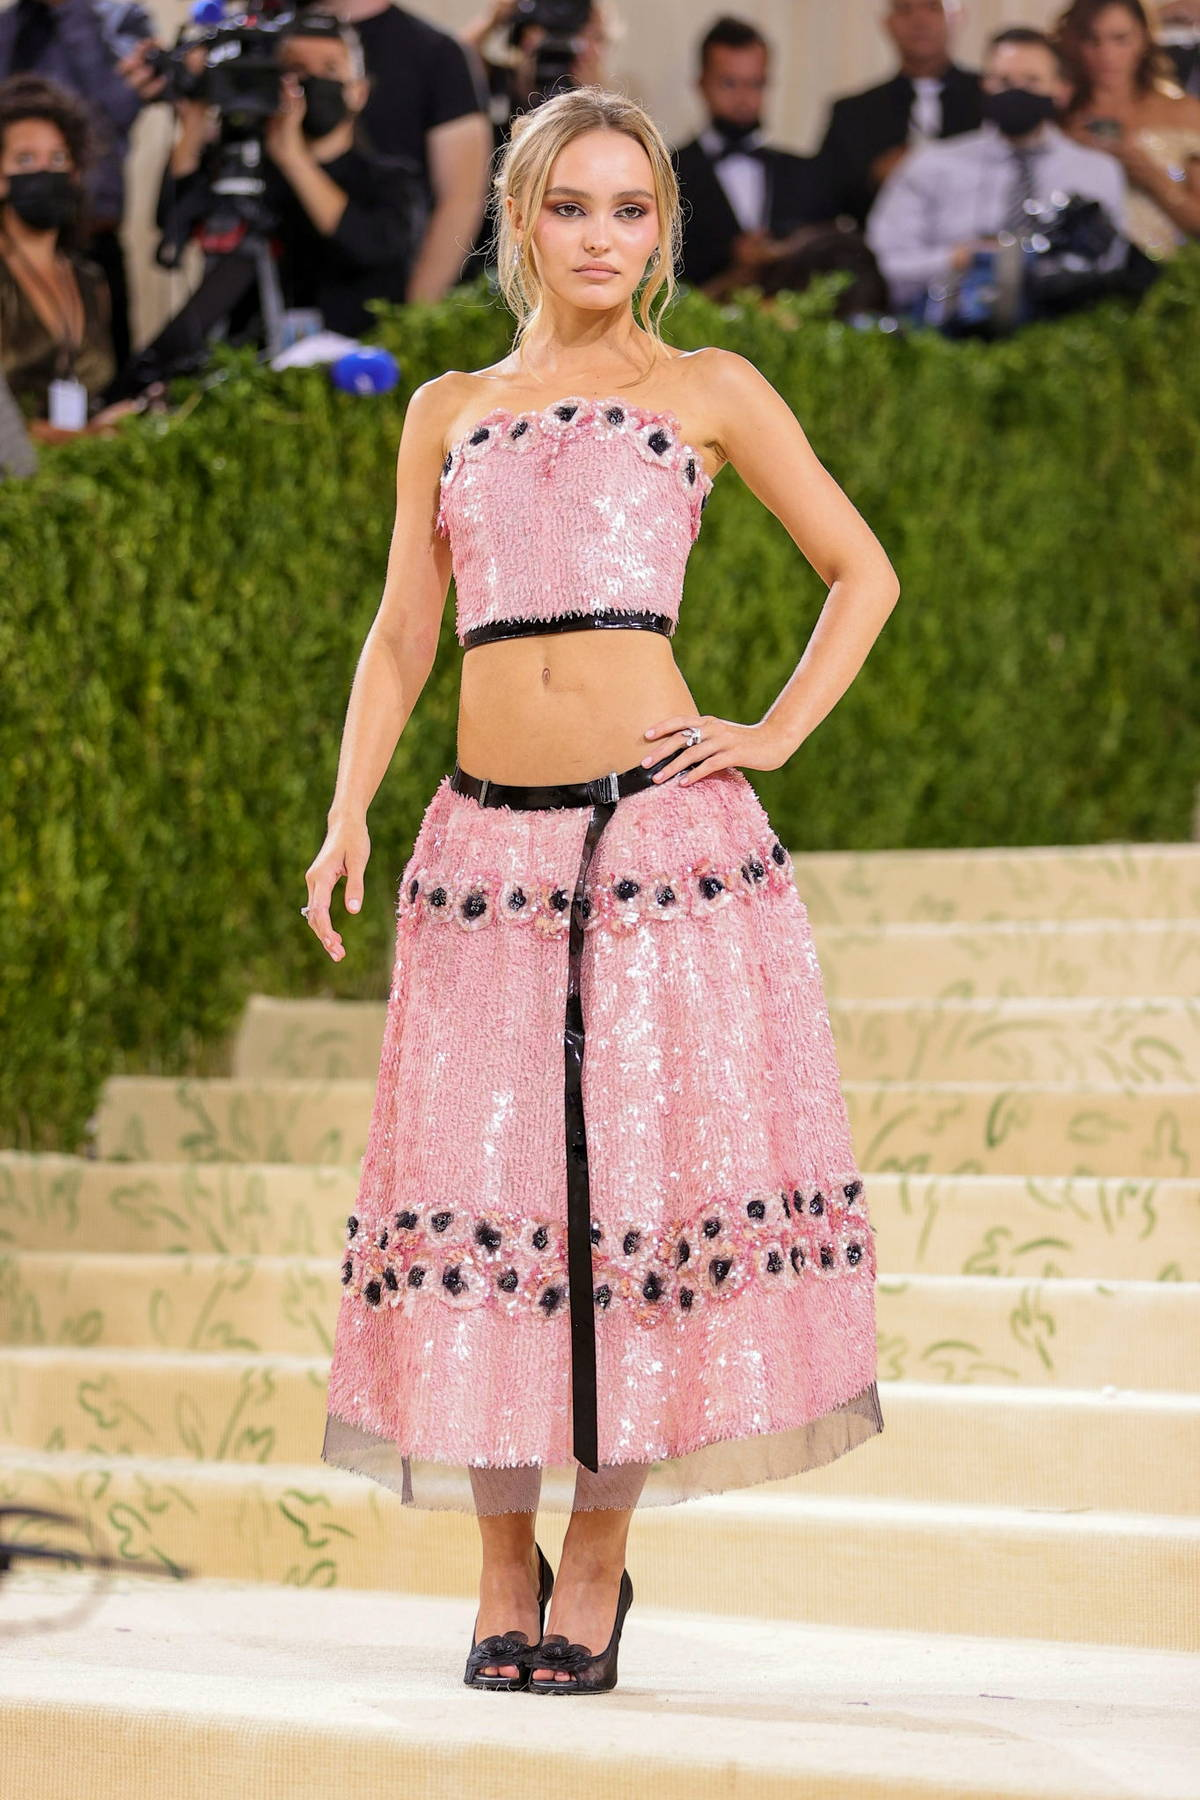 Lily-Rose Depp attends The Met Gala Celebrating In America: A Lexicon Of Fashion at Metropolitan Museum of Art in New York City